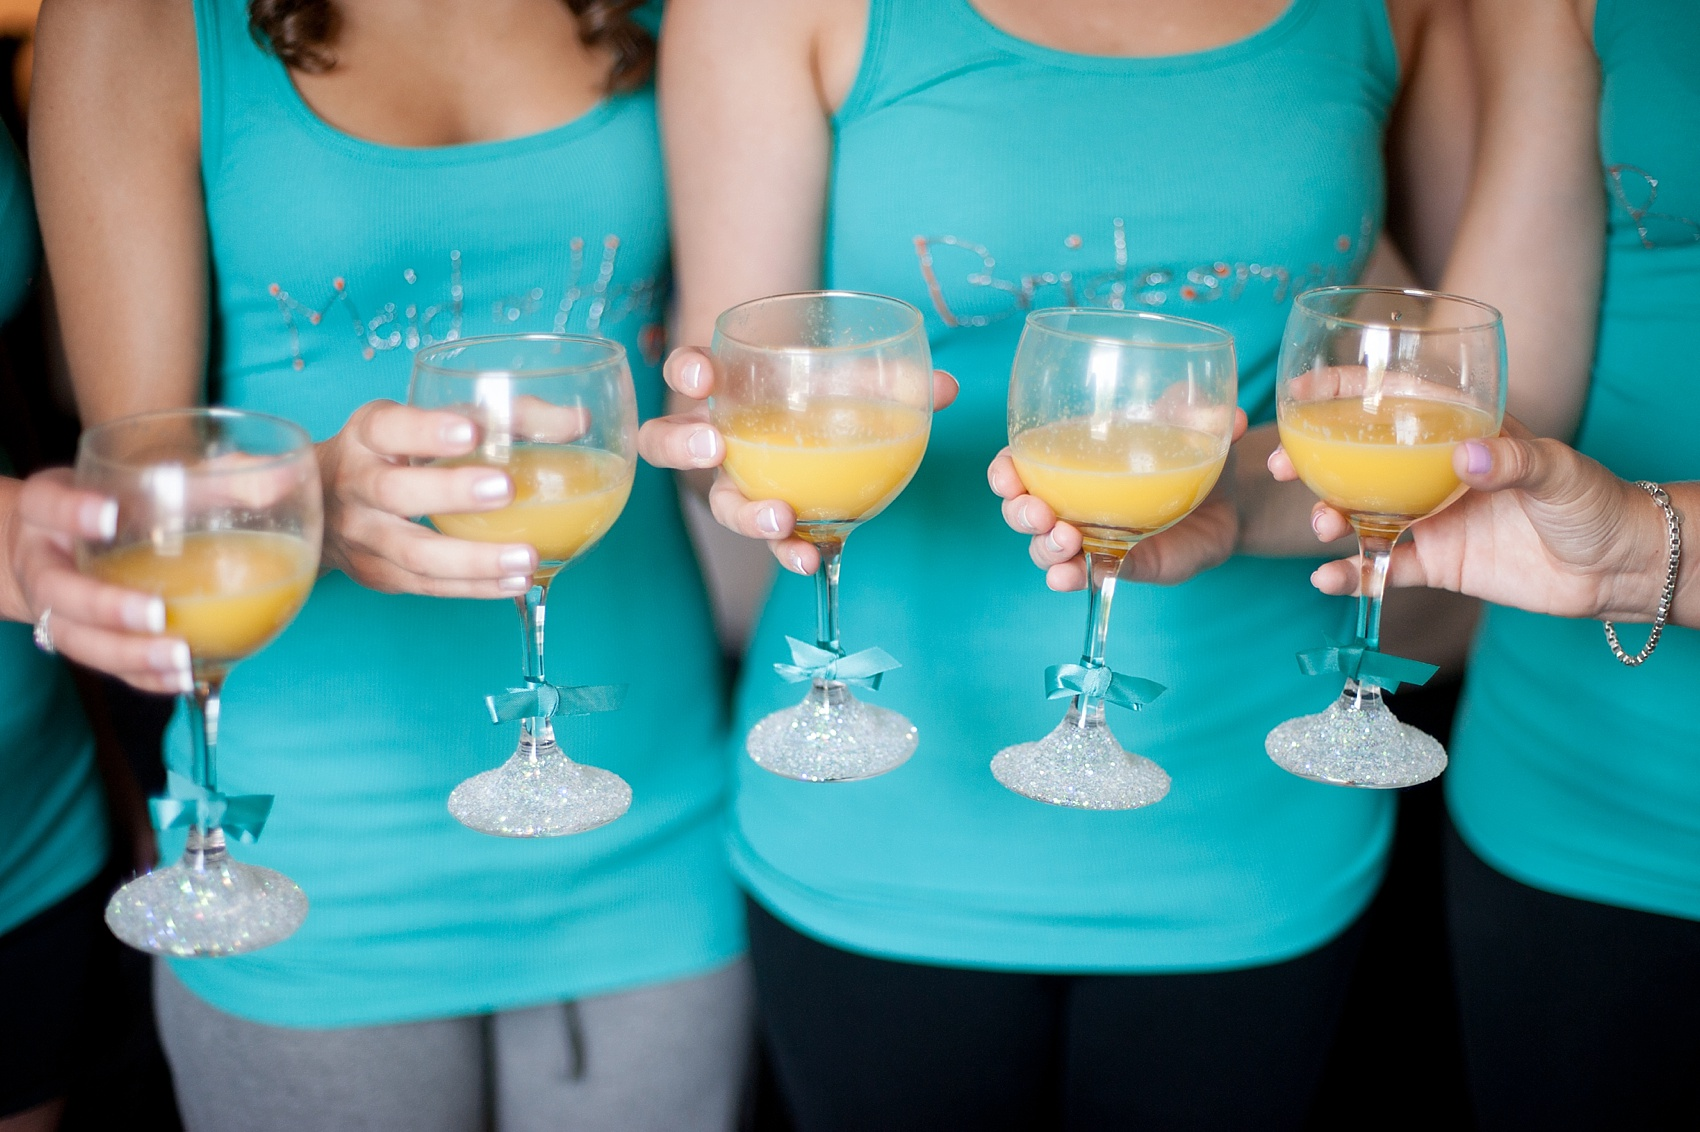 Bridesmaids custom wine glasses for morning mimosas. Wedding at Hollow Brook Golf Club, New York. Photo by Mikkel Paige Photography.